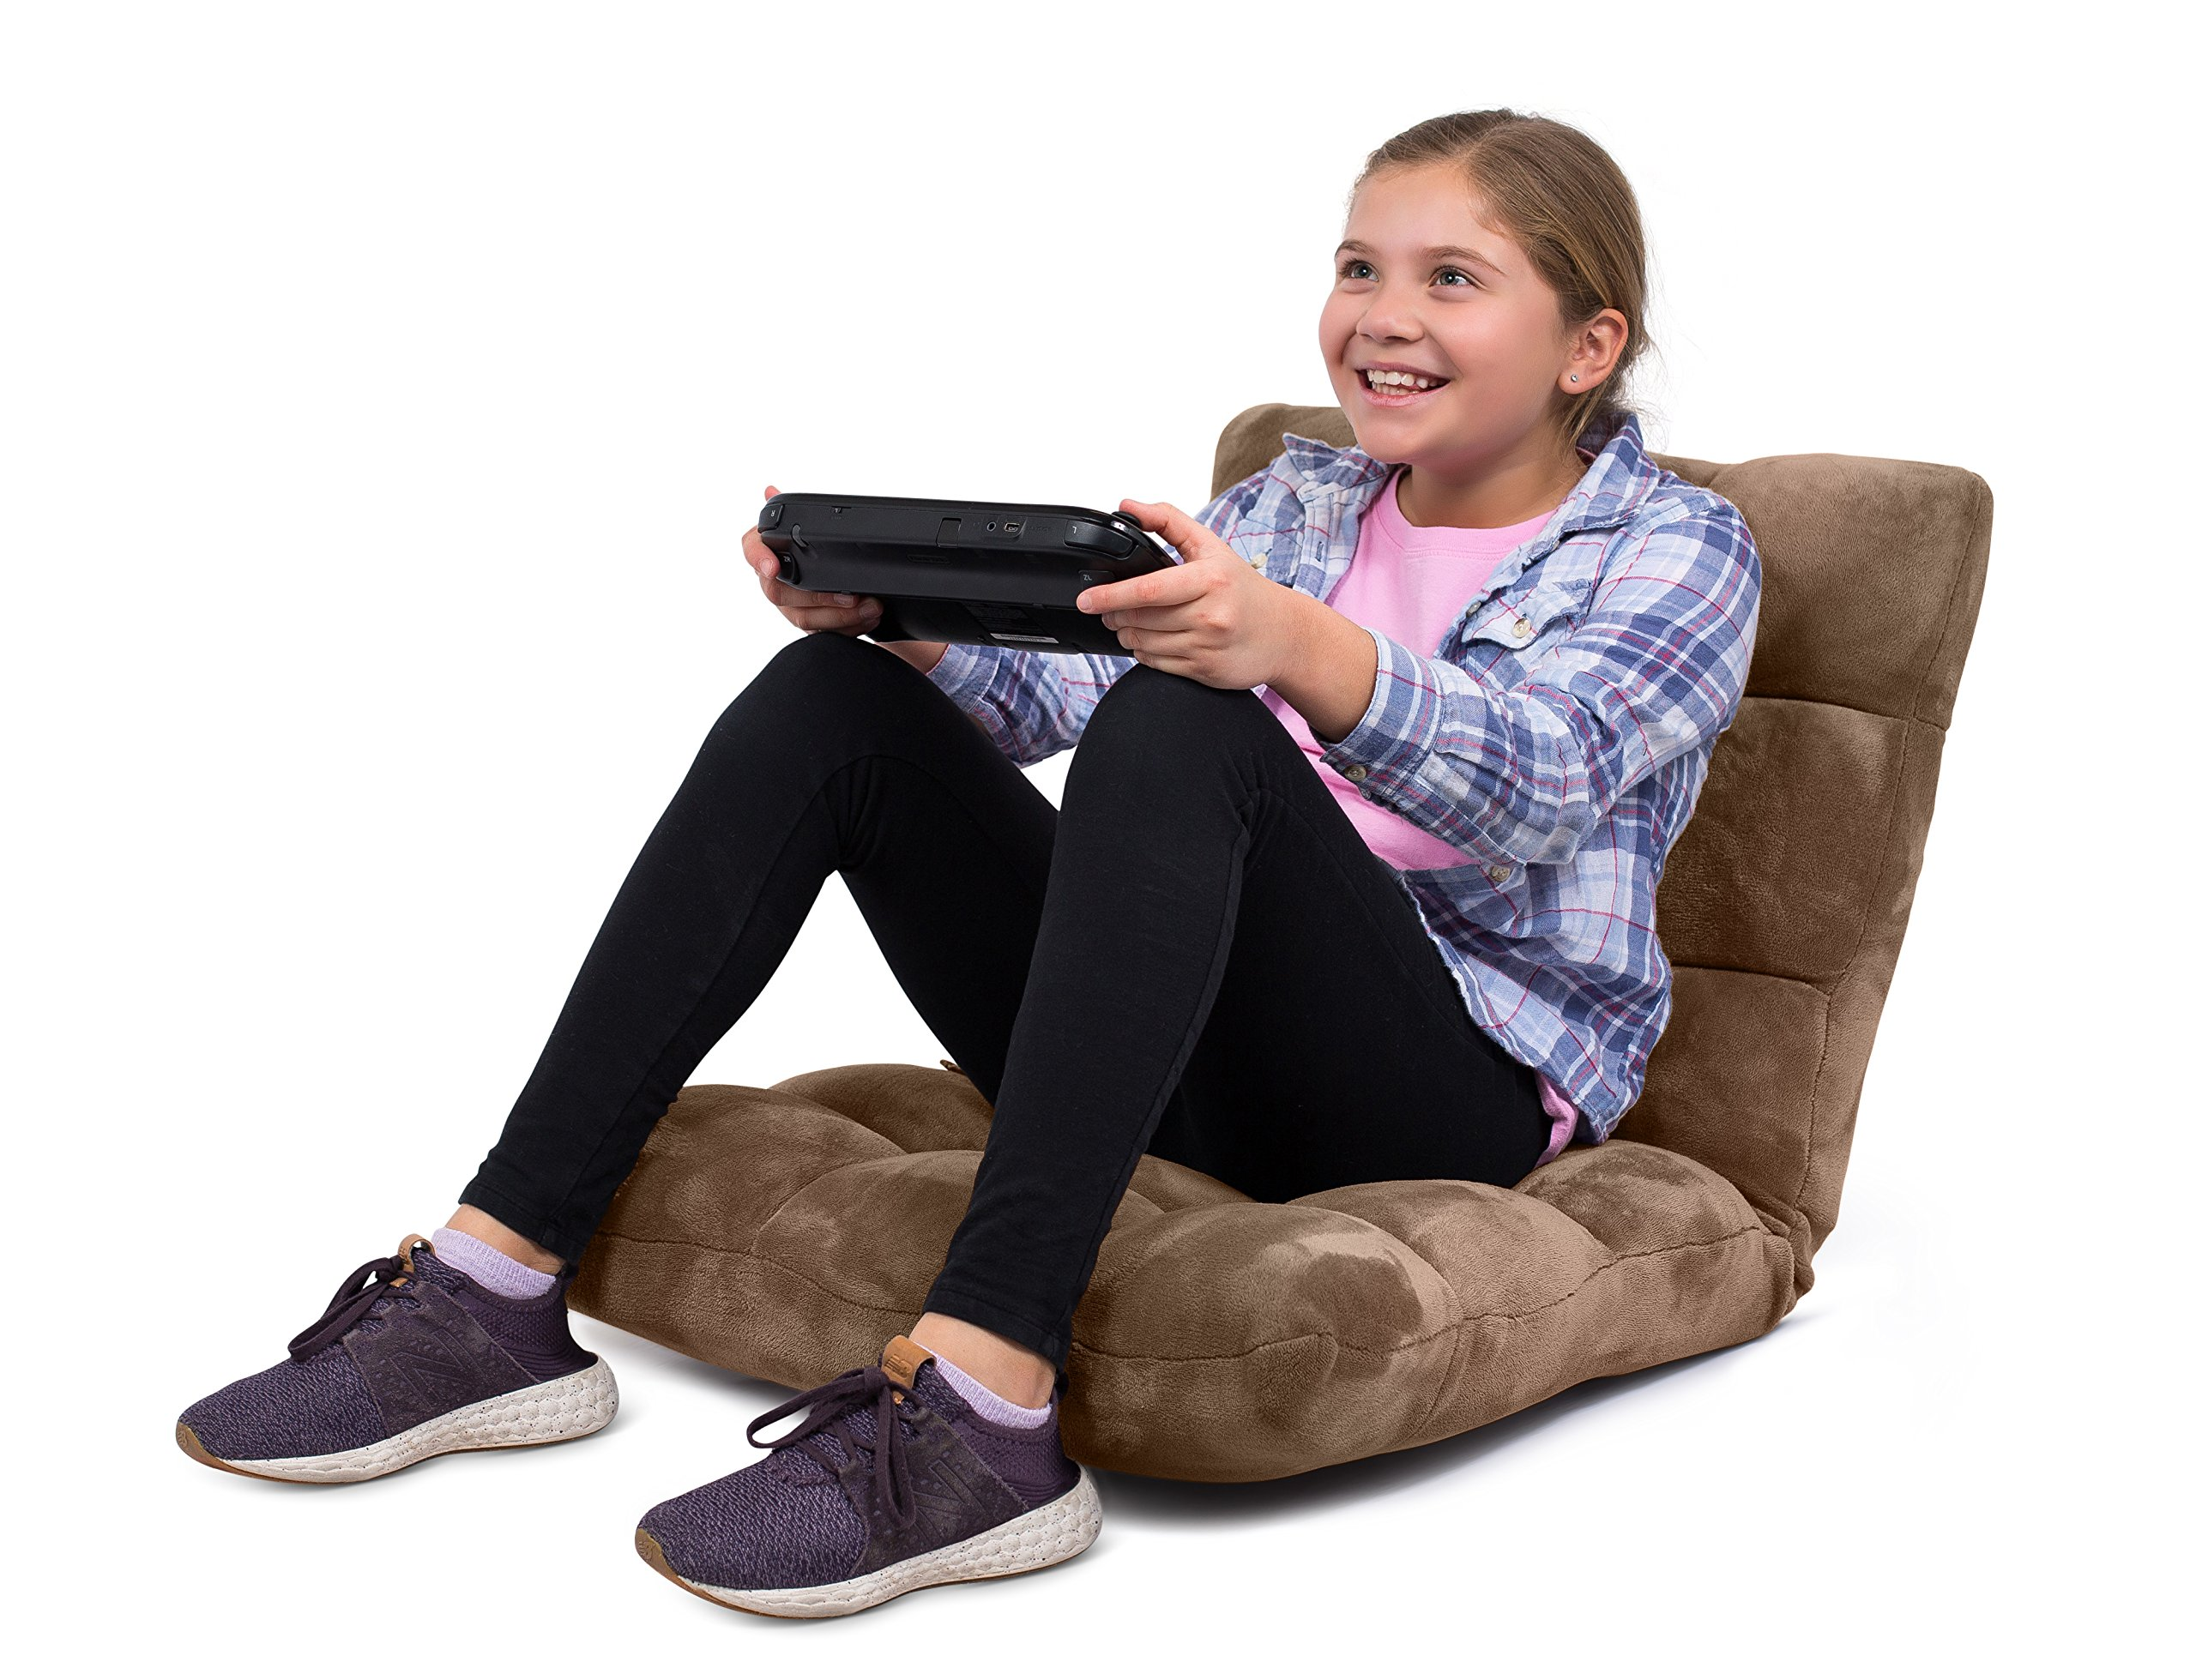 BirdRock Home Adjustable 14-Position Memory Foam Floor Chair | Padded Gaming Chair | Comfortable Back Support | Rocker | Great Reading Games Meditating | Fully Assembled | Brown